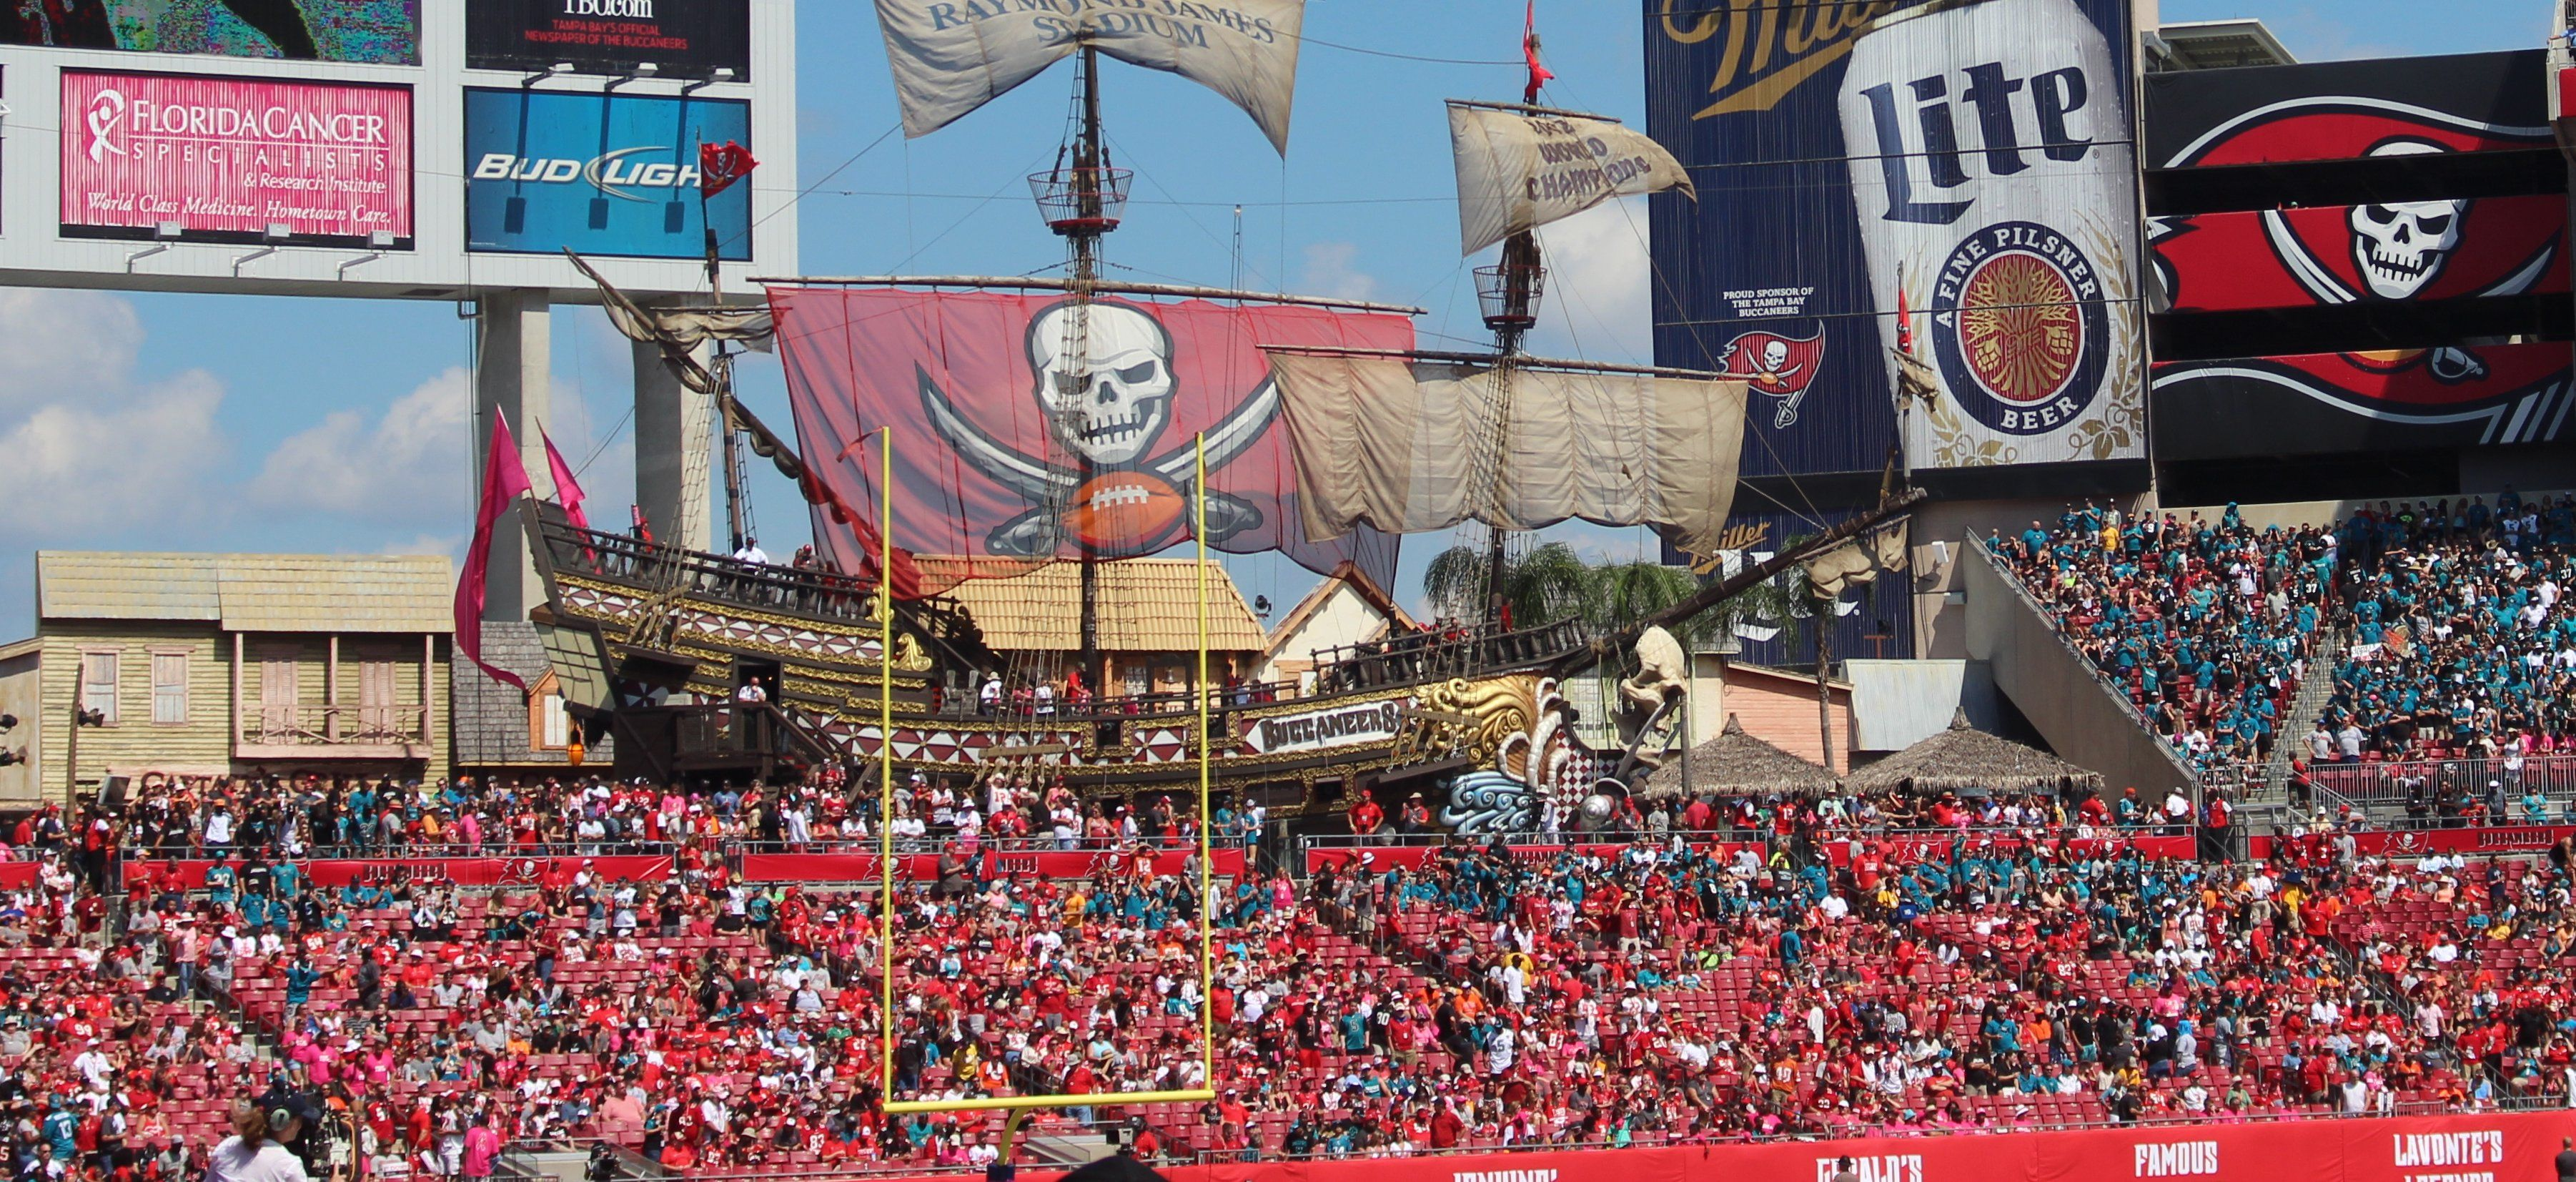 Tampa Bay Buccaneers Ship Inside Raymond James Stadium In Tampa Florida Raymond James Stadium Tampa Bay Tampa Bay Buccaneers